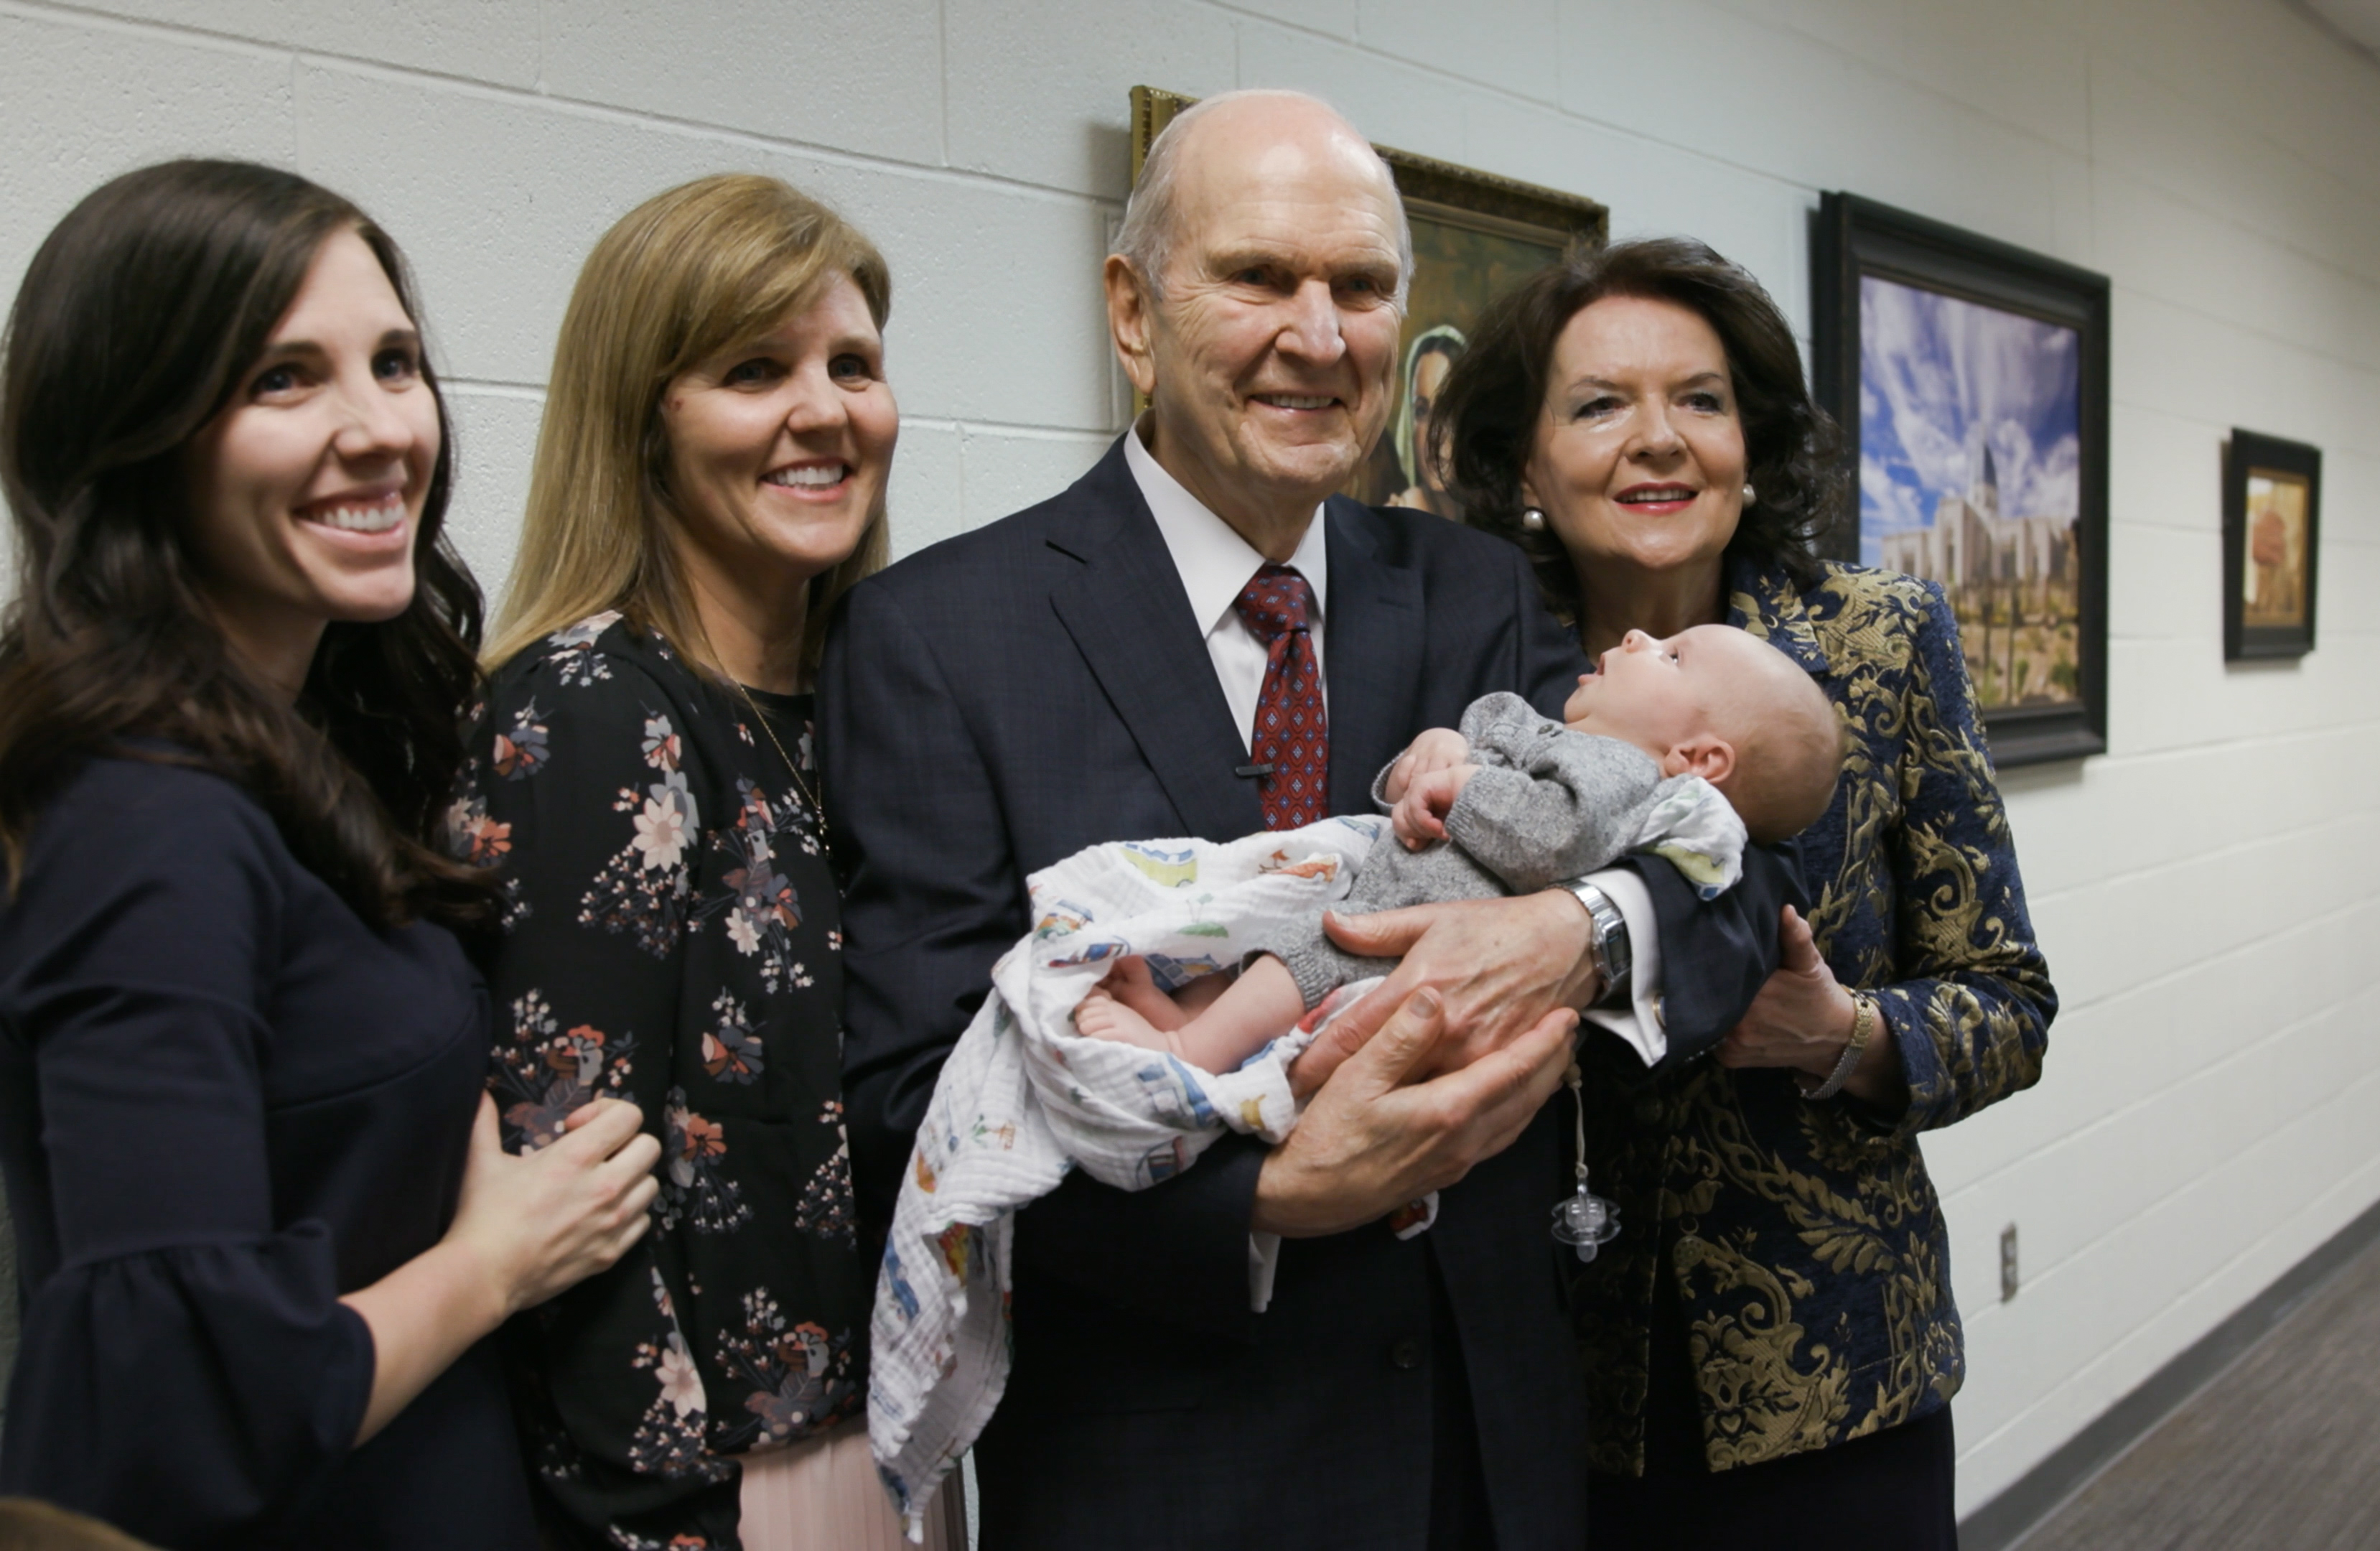 President Russell M. Nelson of The Church of Jesus Christ of Latter-day Saints and his wife, Sister Wendy Nelson, greet family members at the State Farm Stadium in Phoenix on Sunday, Feb. 10, 2019.